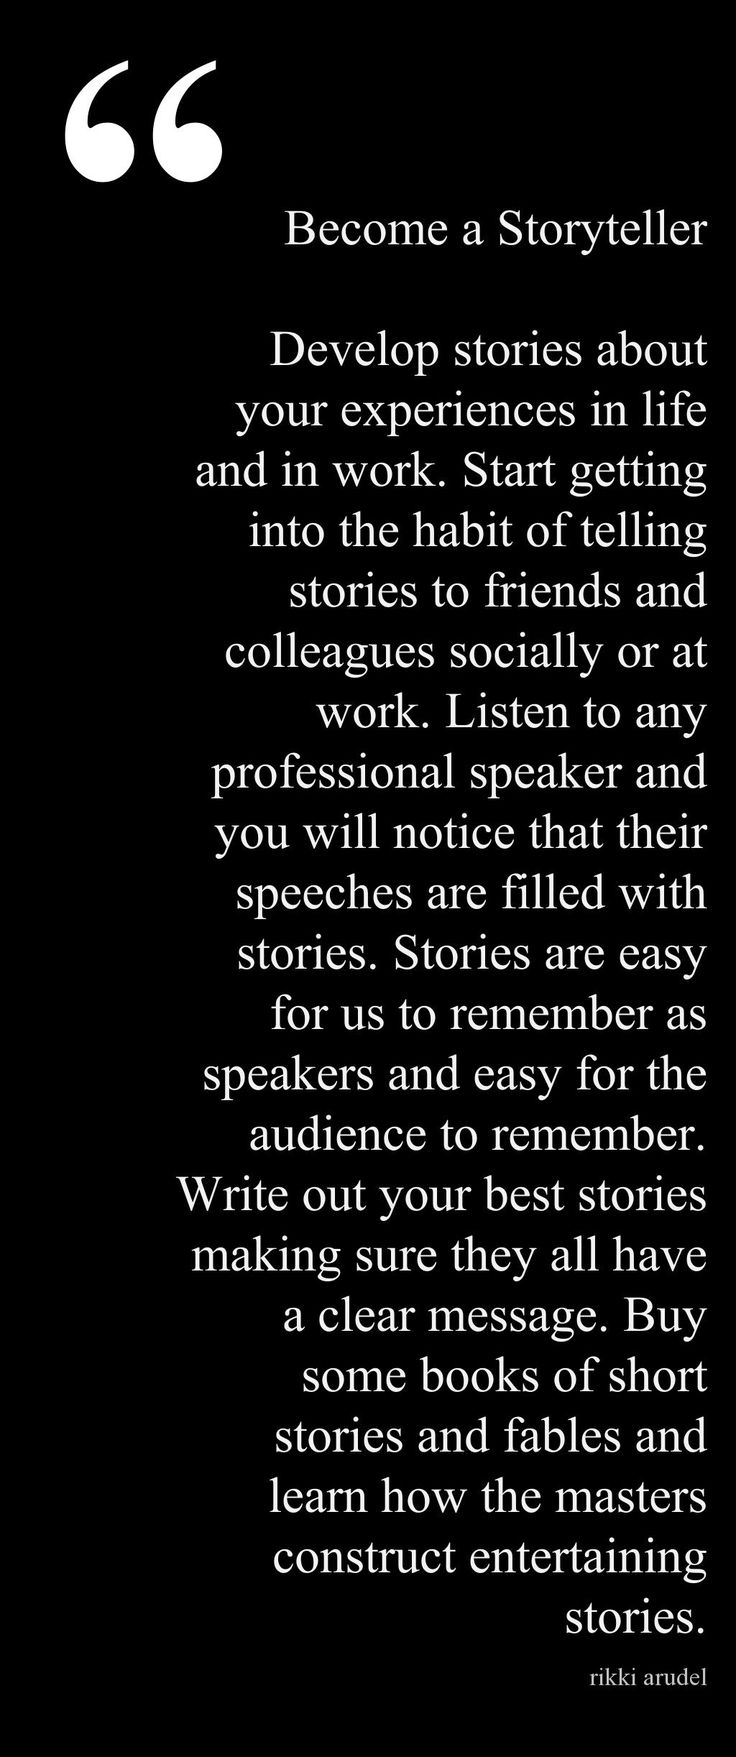 Become a storyteller. Stories can be compelling points of a presentation, especially a story that is personal or highly relevant. -------- For more public speaking and presentation tips, check out www.HugSpeak.com